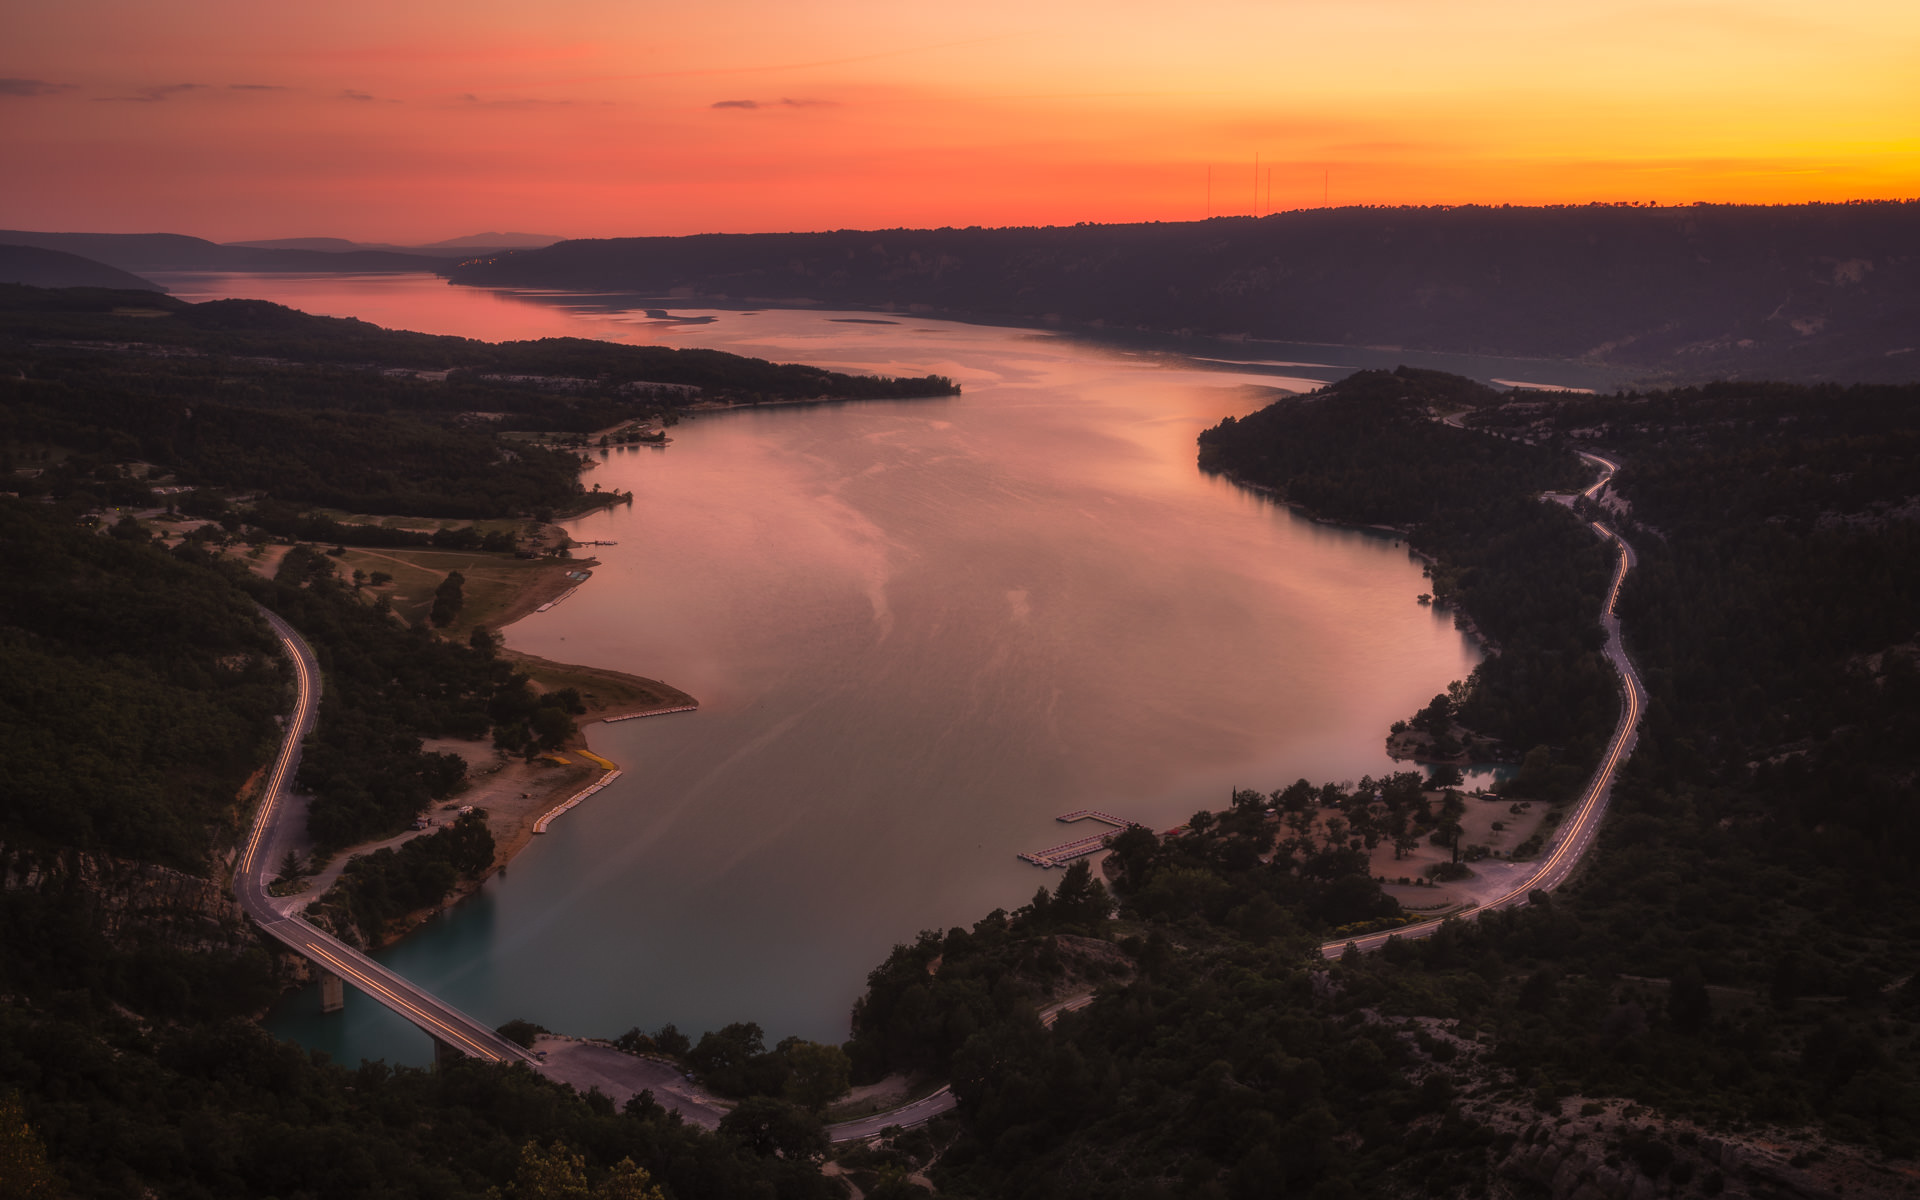 Lac de Sainte-Croix - Provence, France - Landscape Photography